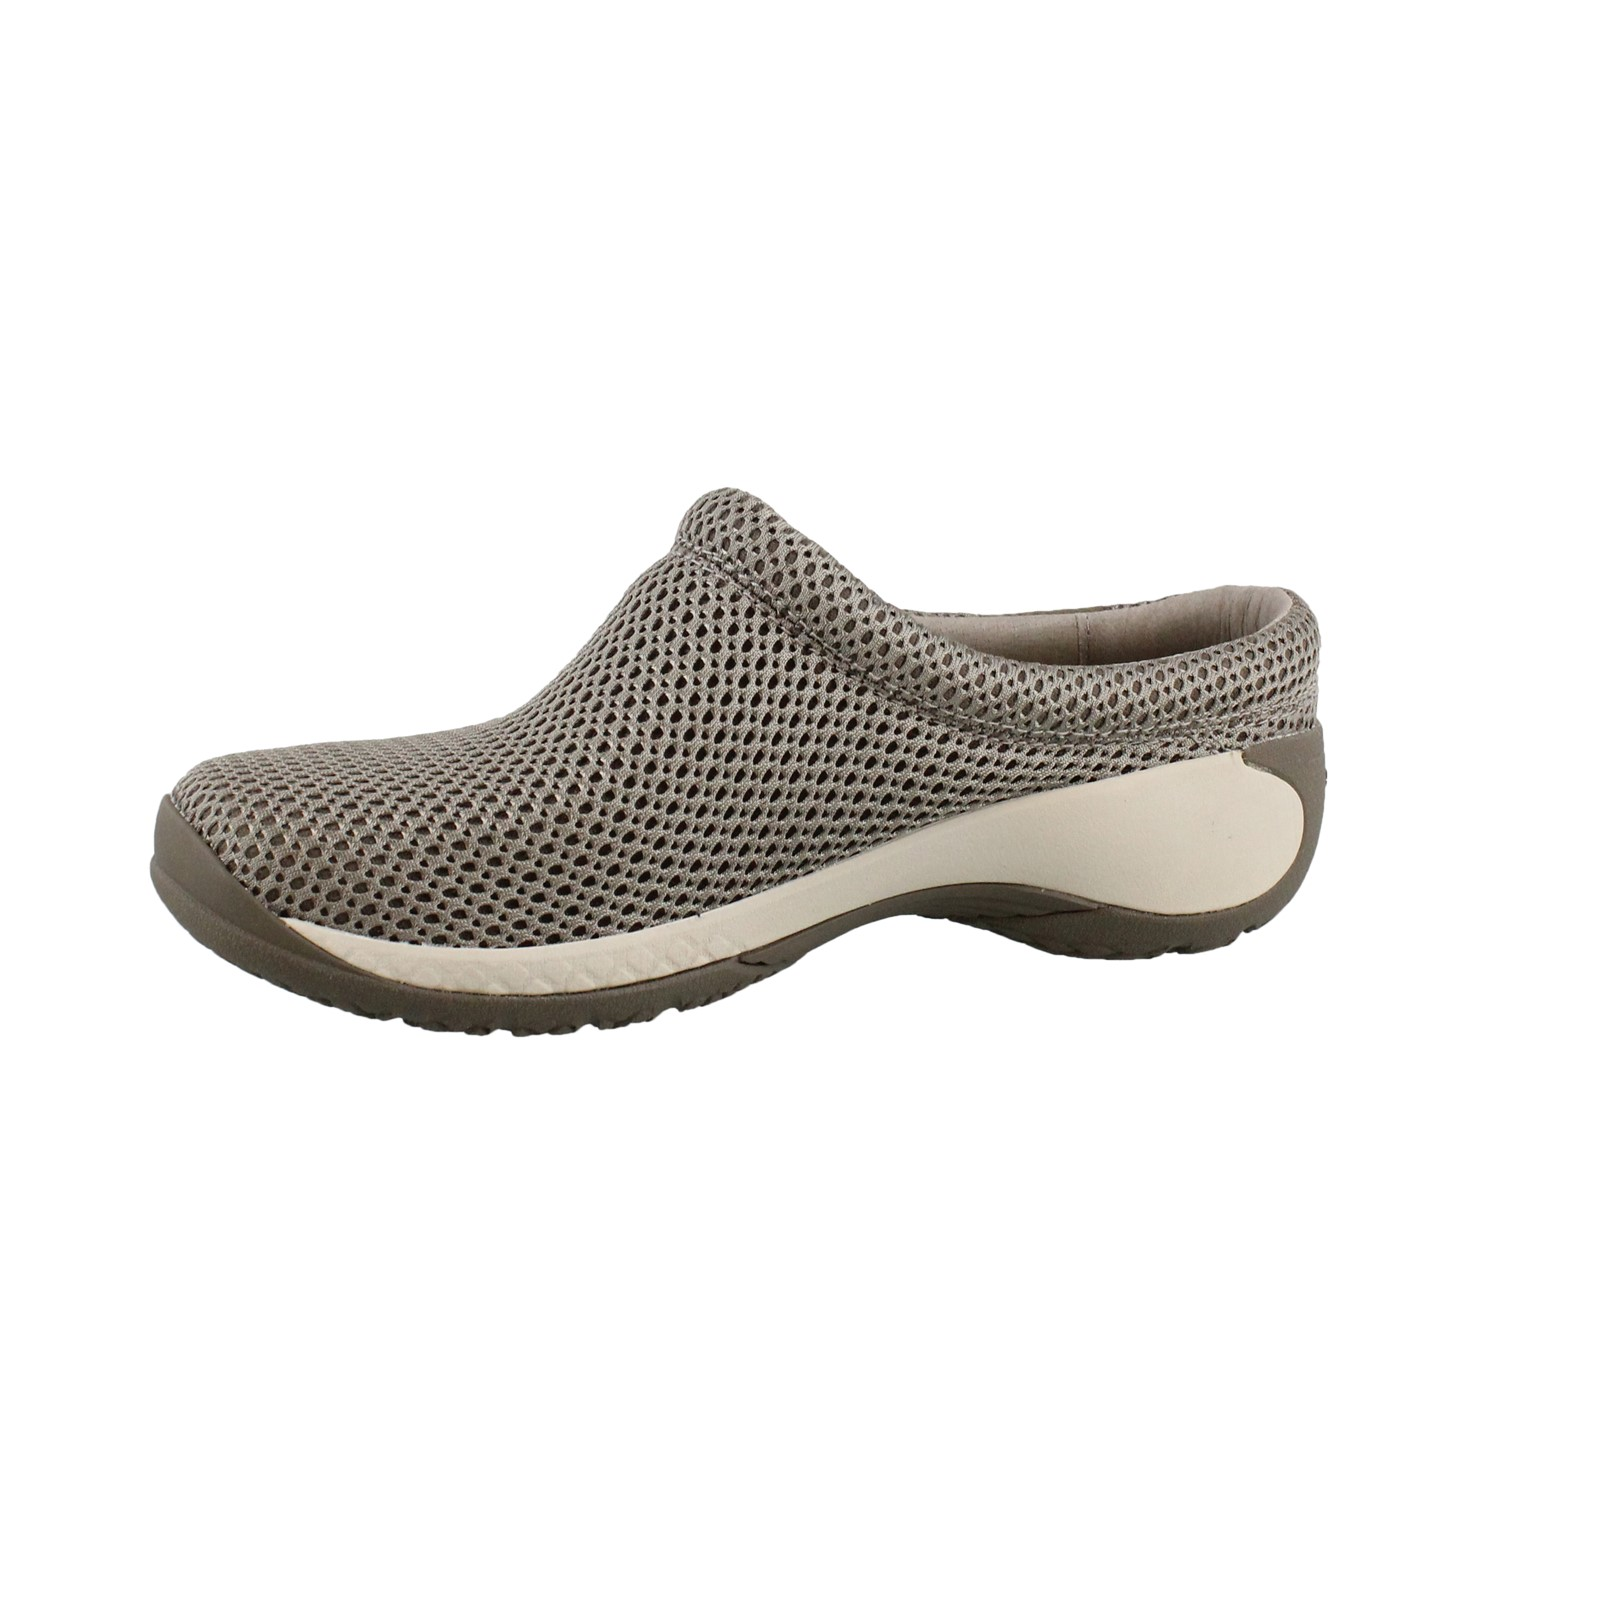 diversified in packaging outlet boutique thoughts on Women's Merrell, Encore Q2 Breeze Clog - Wide Width